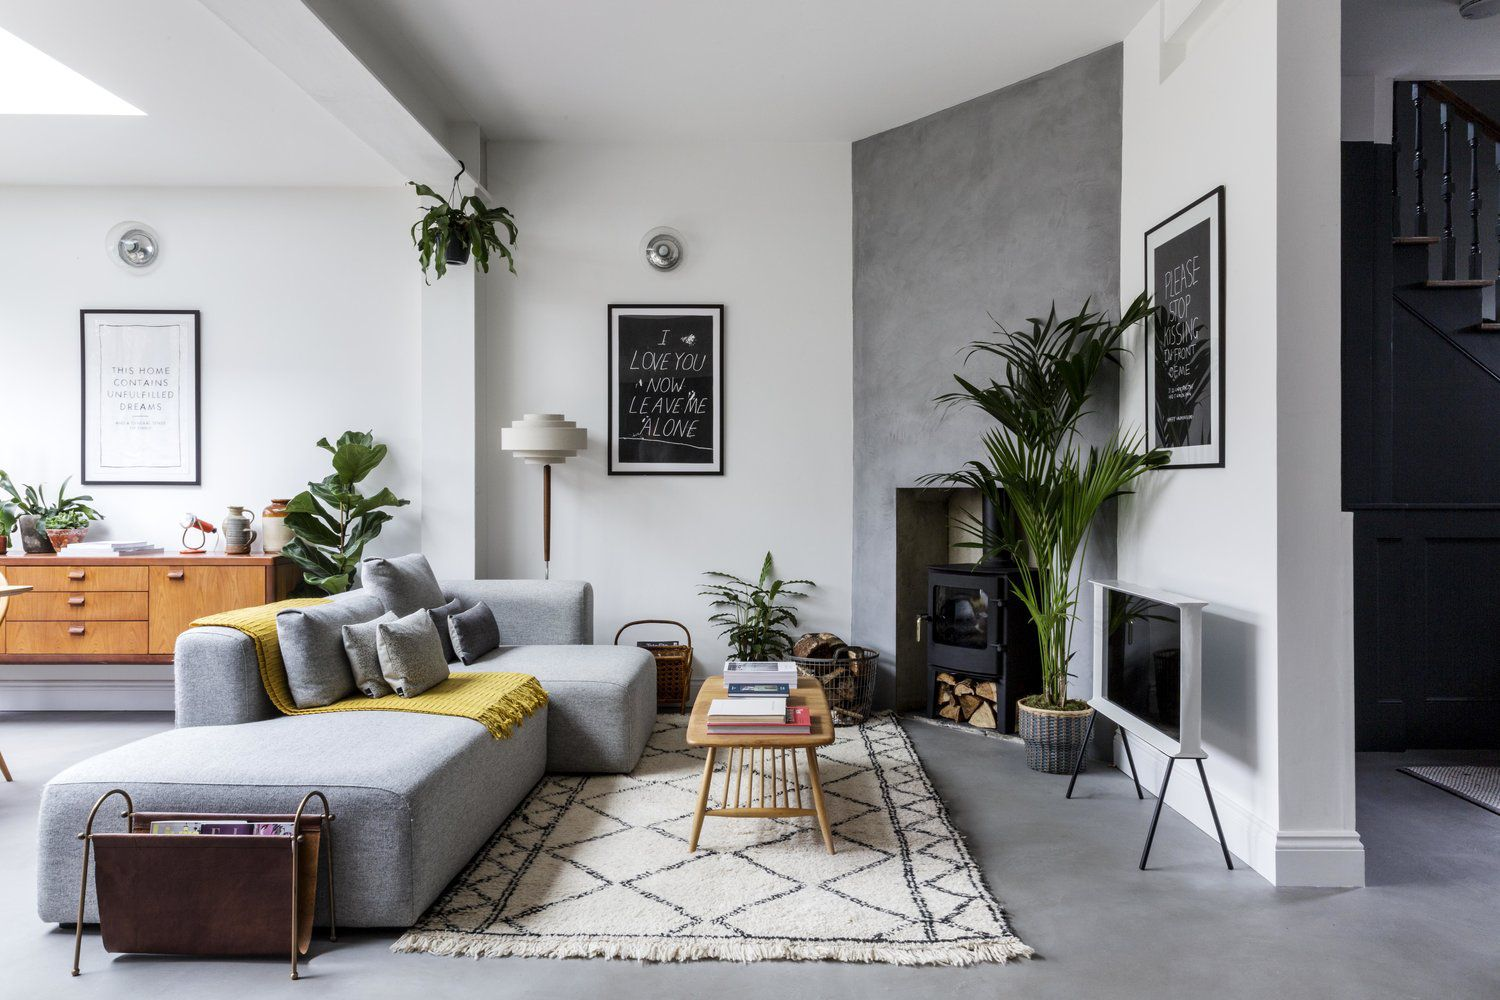 29 Ways to Decorate With Concrete Accents